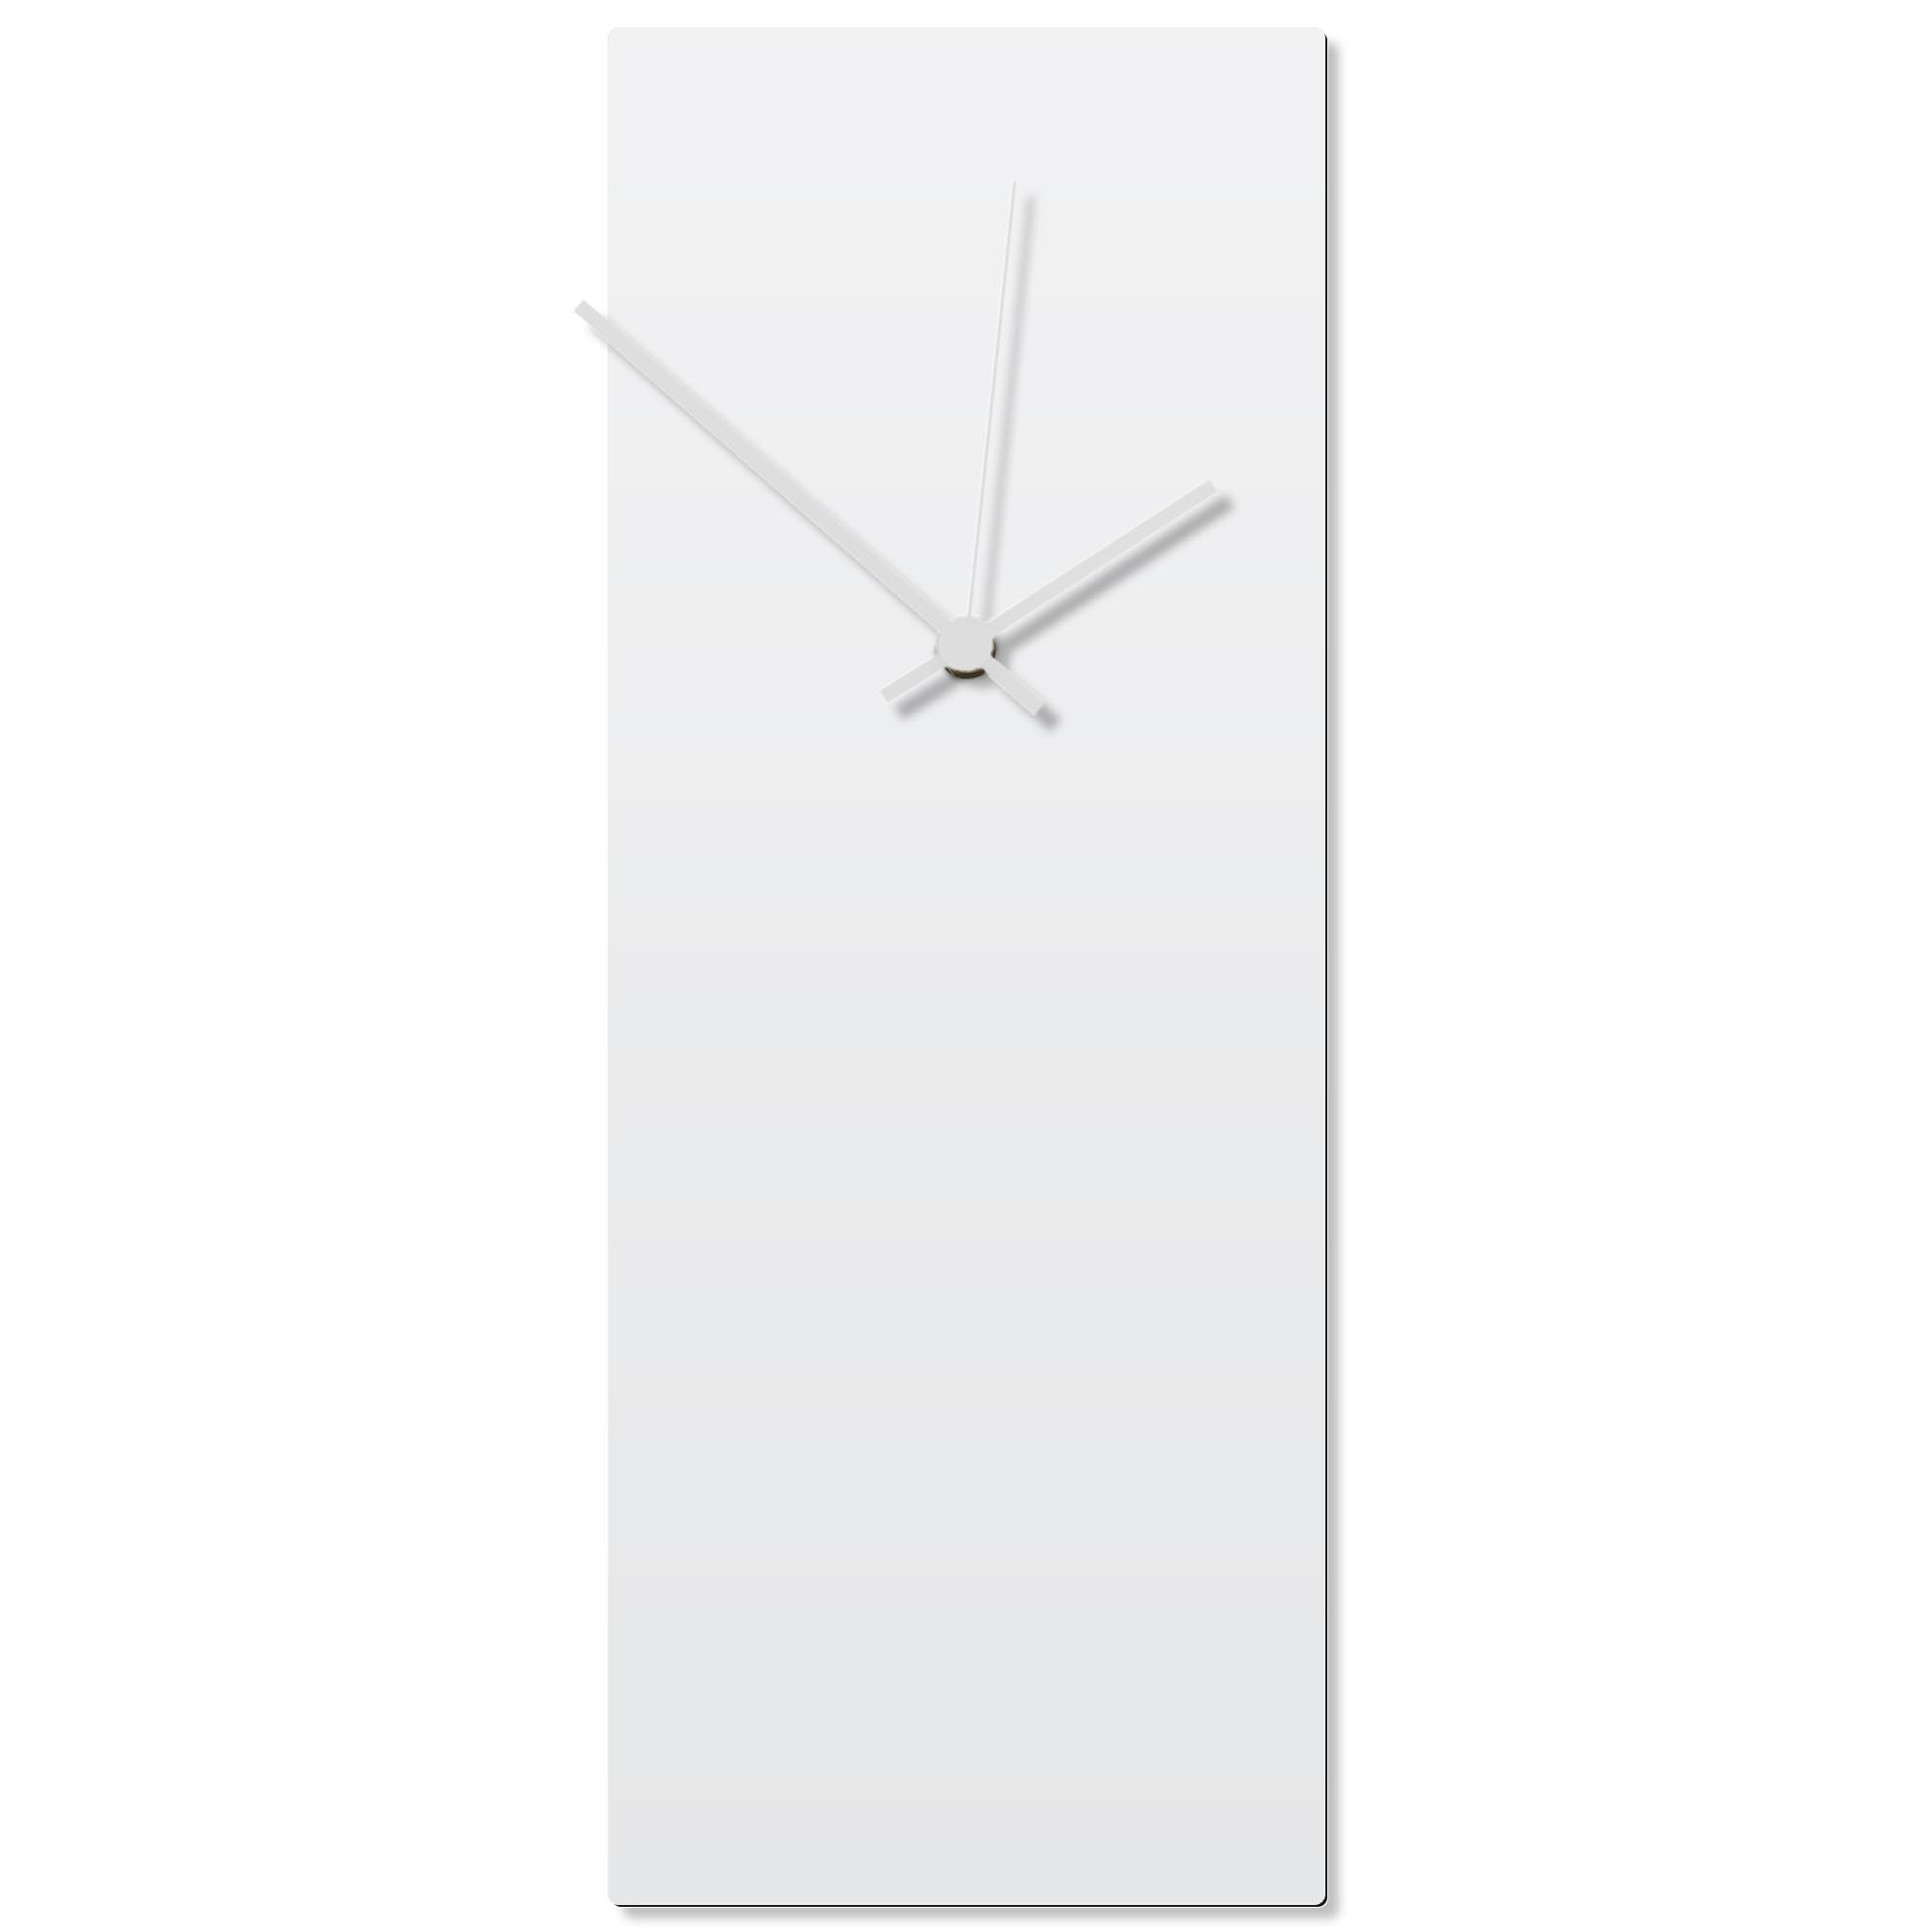 Whiteout White Clock Large 8.25x22in. Aluminum Polymetal